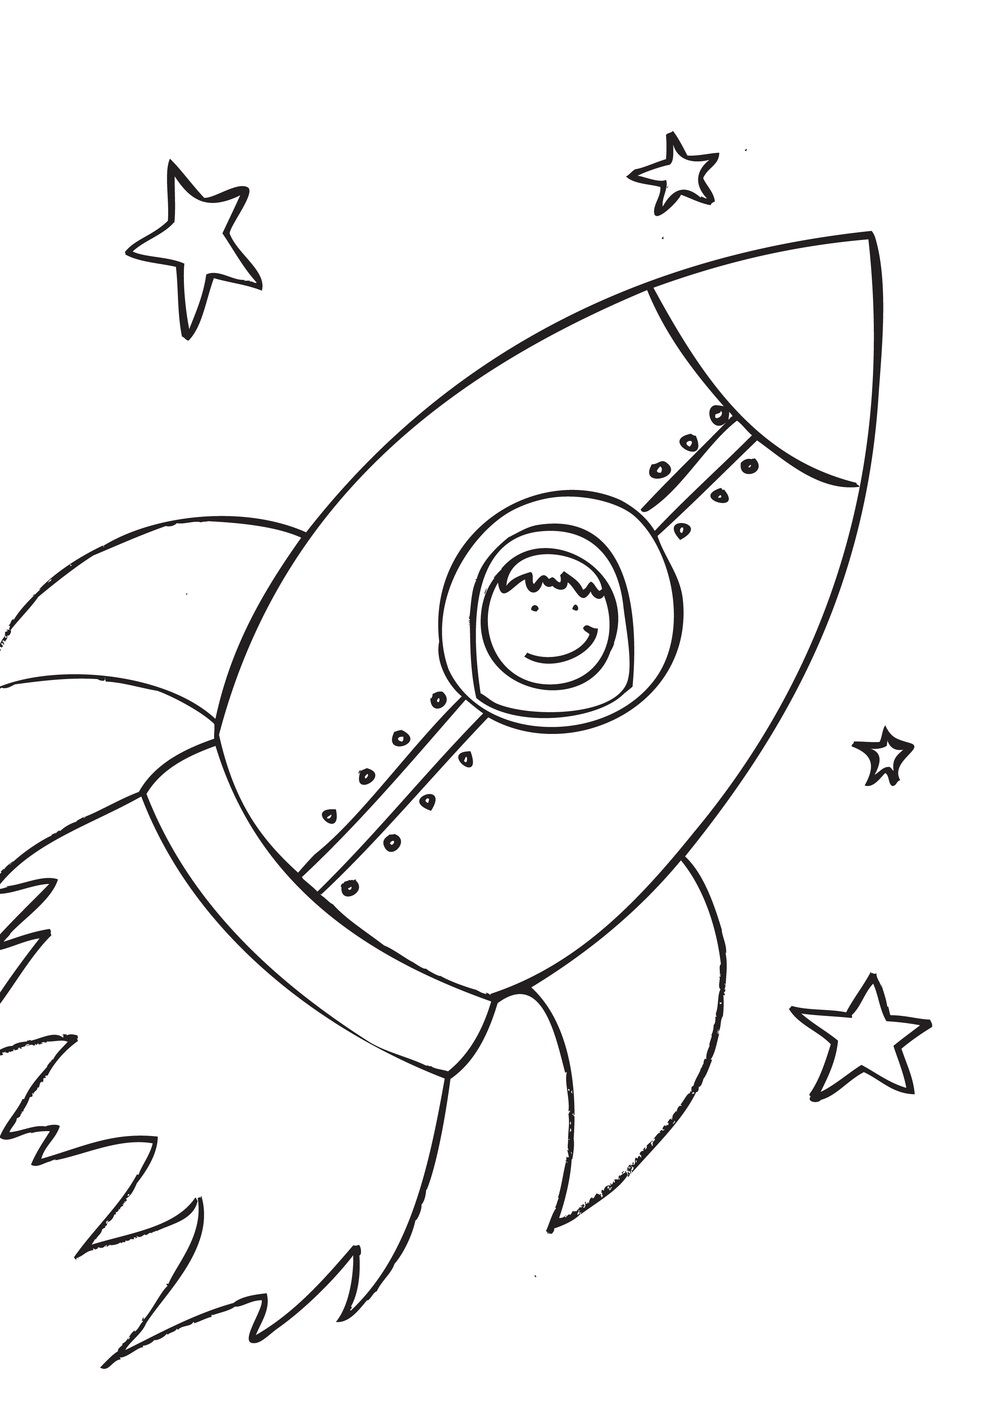 Free rocket ship coloring pages with printable rocket ship coloring